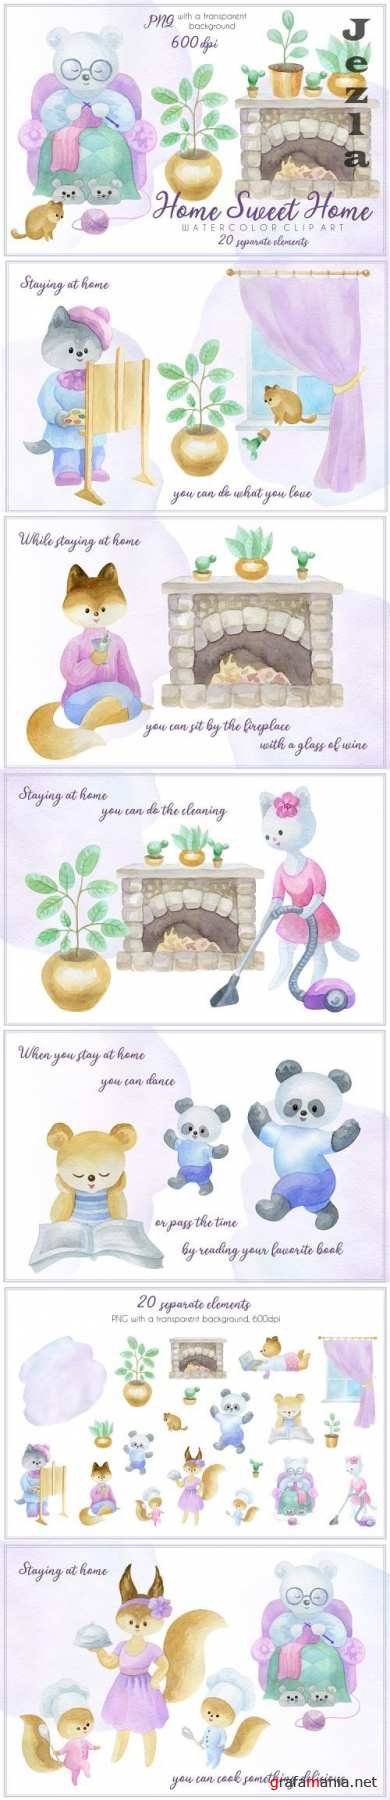 Home sweet home. Watercolor clip art - 532917